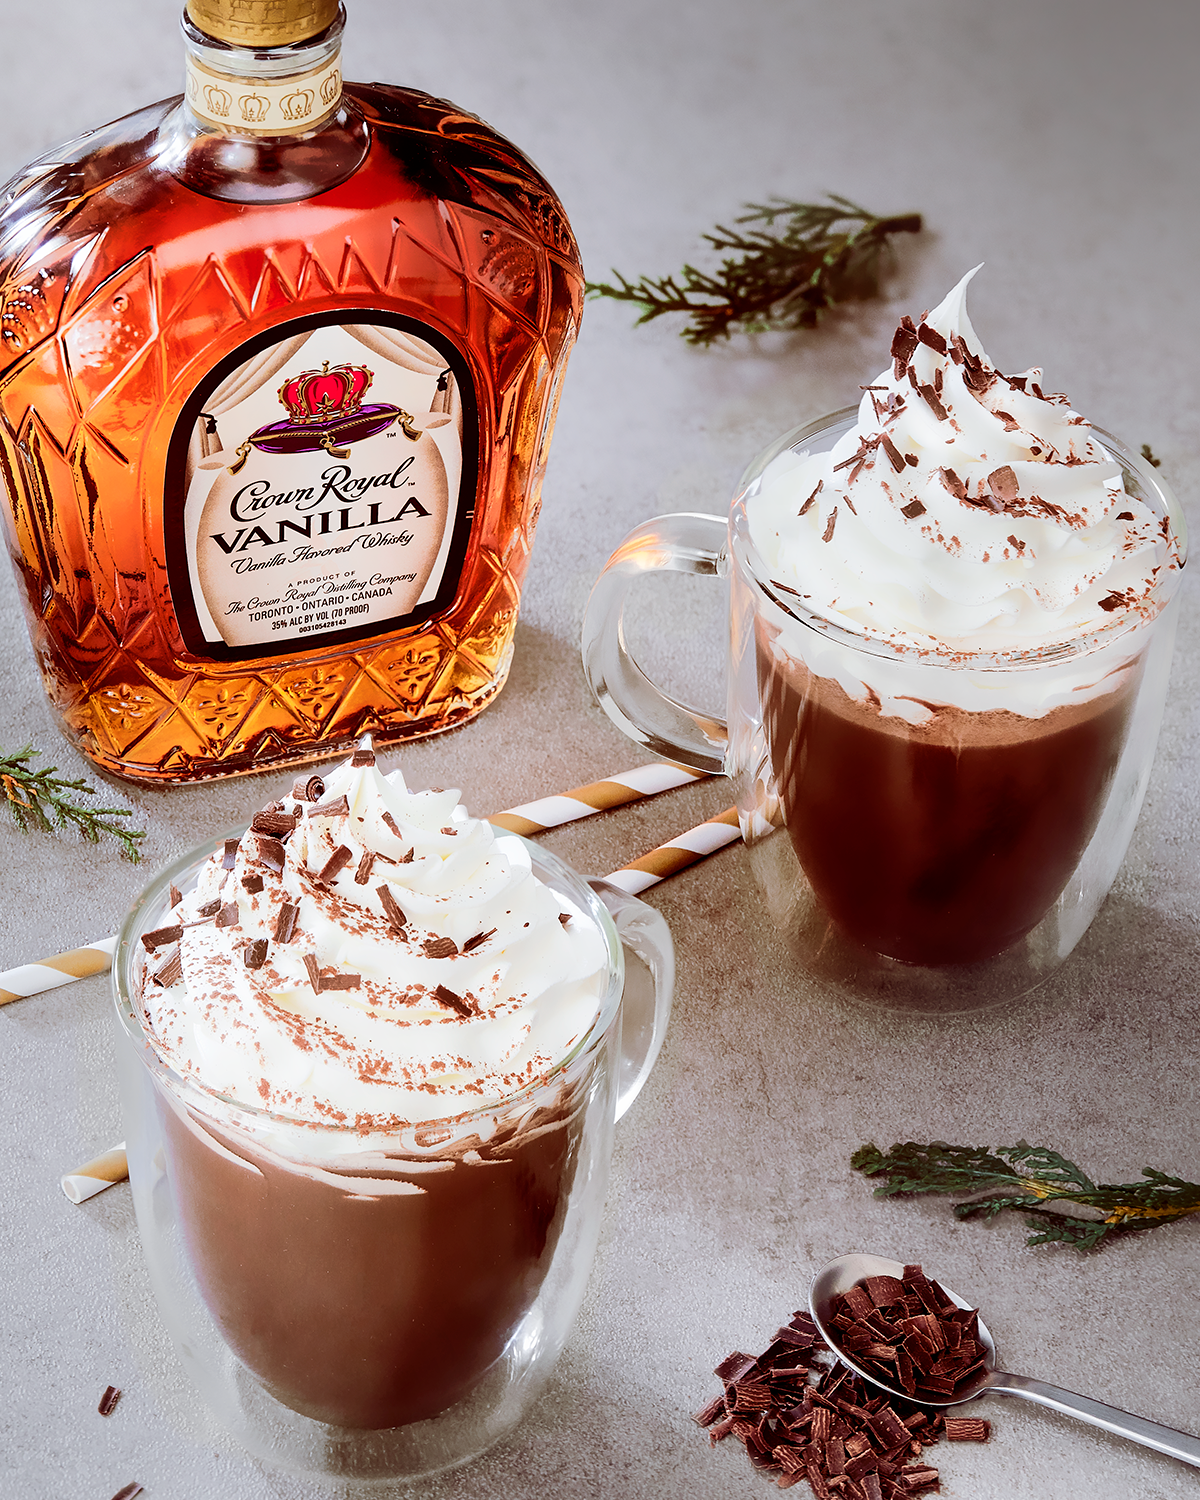 Crown Royal Vanilla Hot Chocolate Whisky Cocktail